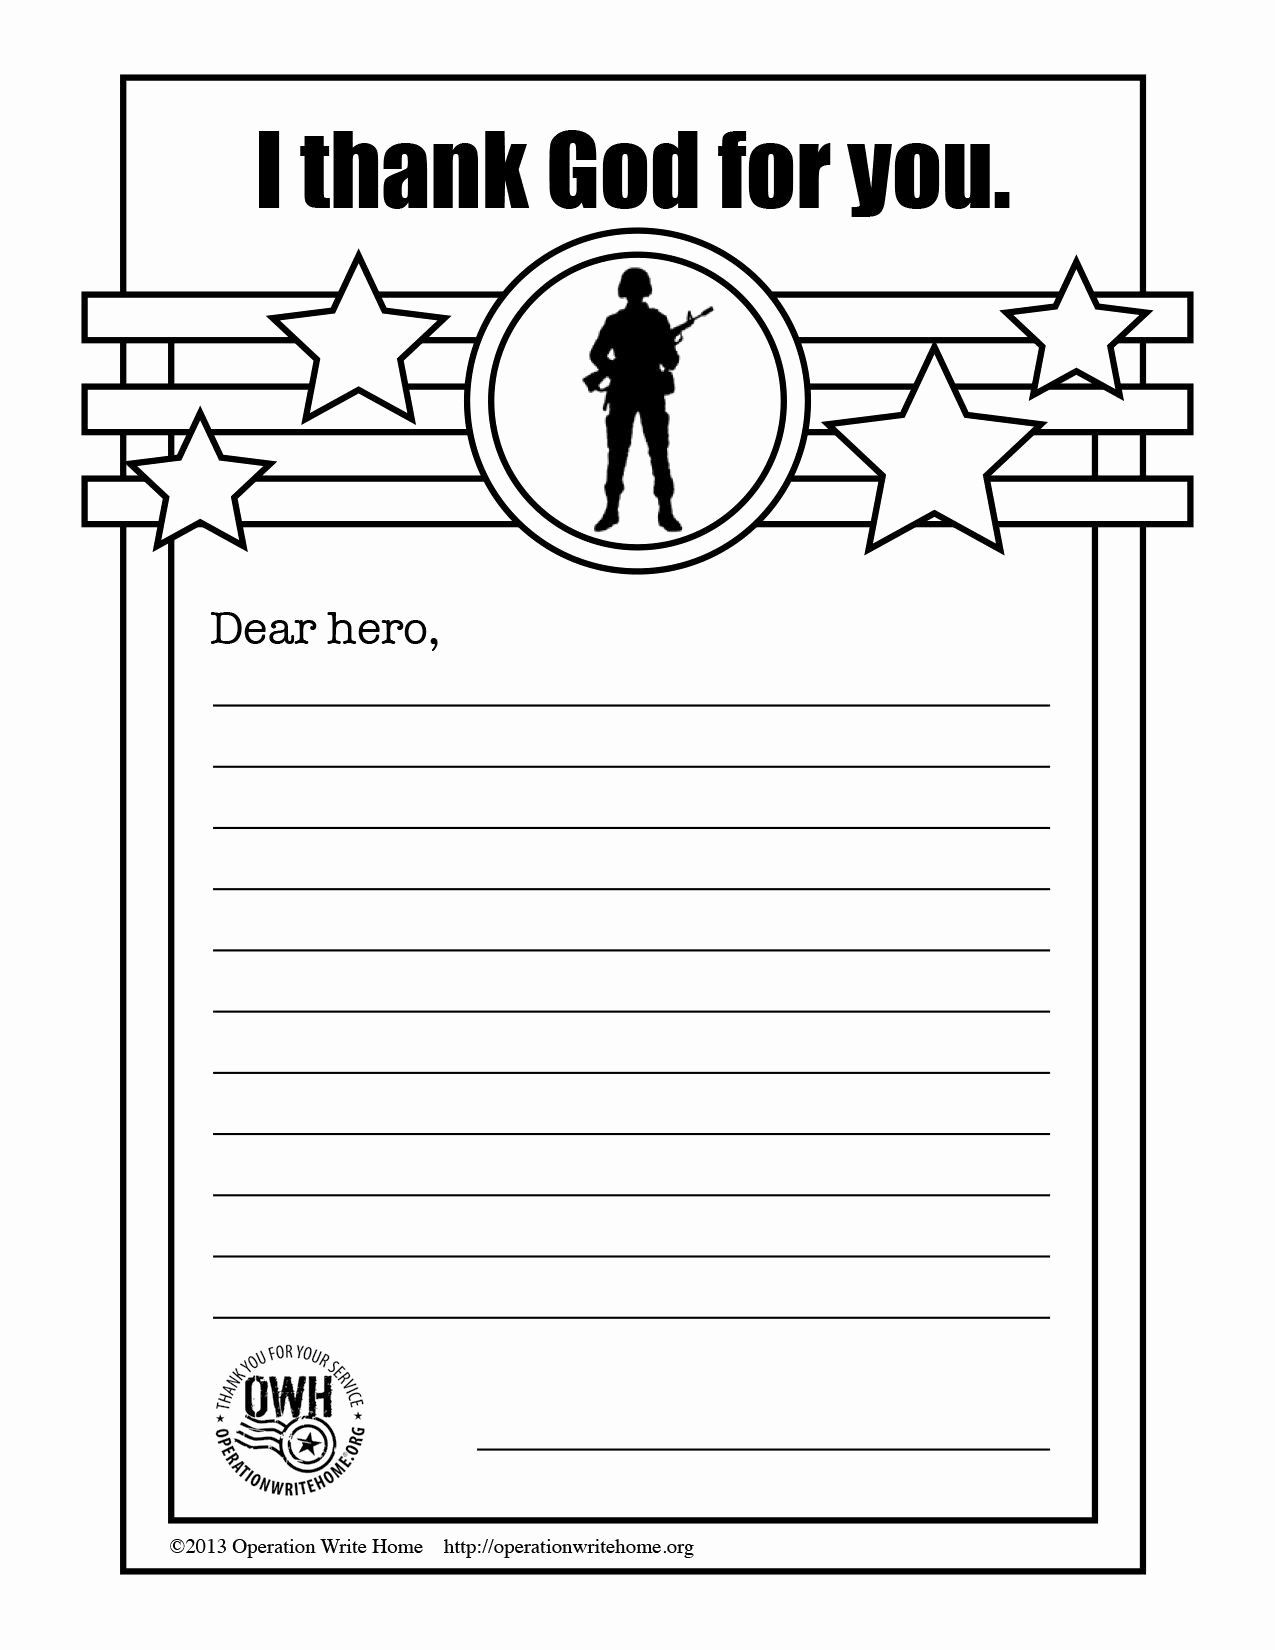 Military Coloring Pages Pdf New Interesting Inspiration Thank You Coloring Pages Marvelous American Heritage Girls Military Cards Coloring Pages